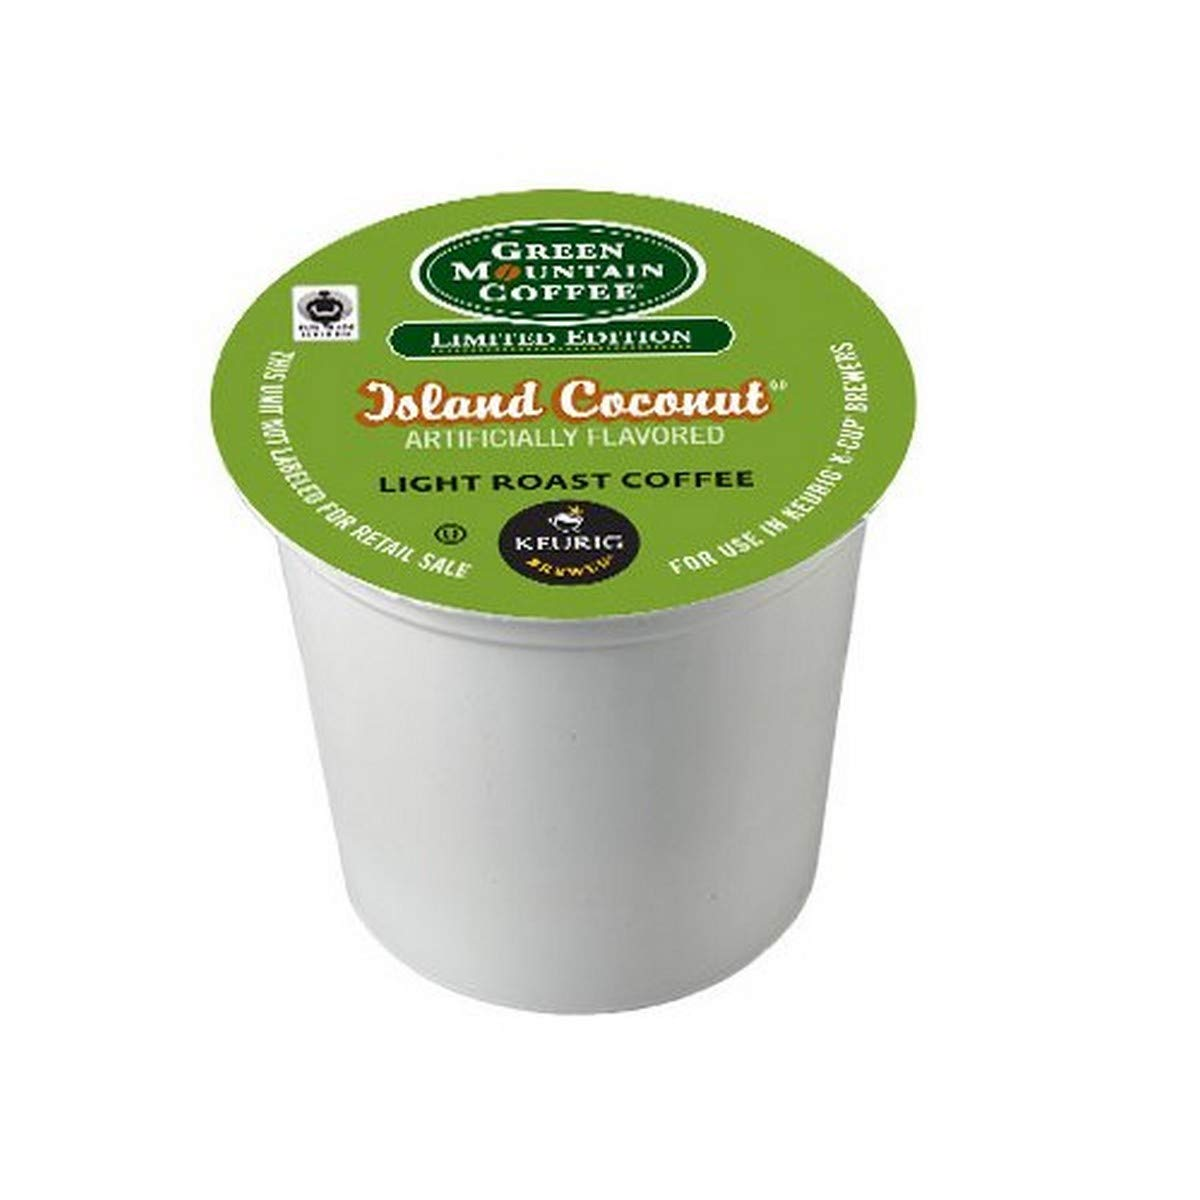 Green Mountain Coffee Light Roast K-Cup for Keurig Brewers, Fair Trade Island Coconut (Pack of 96)